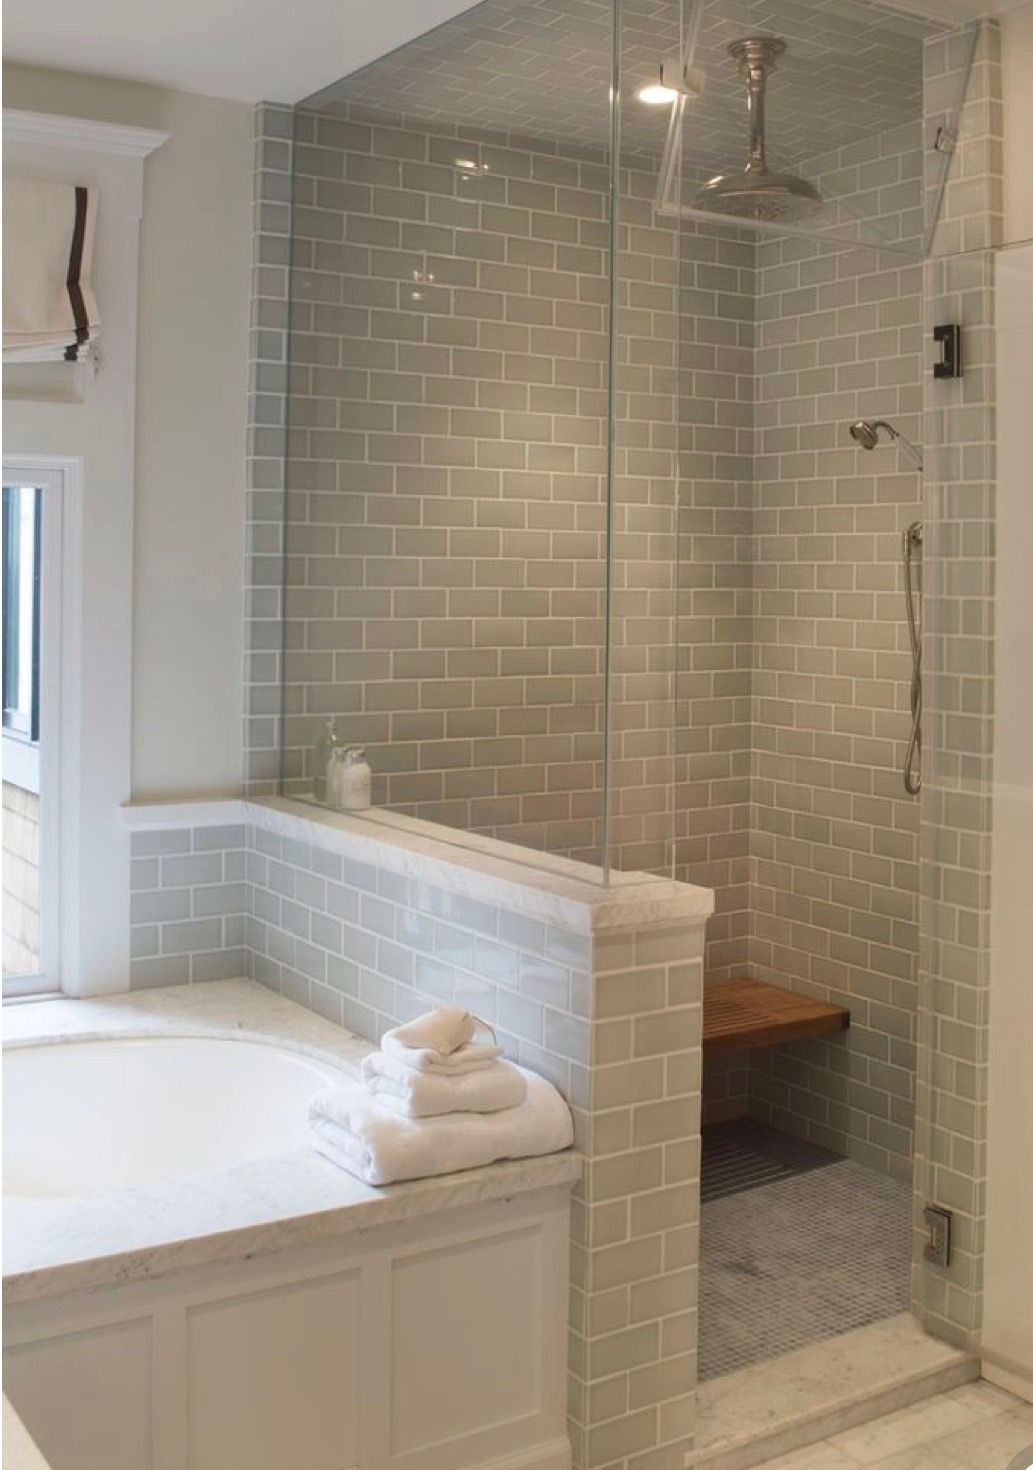 Glass Enclosed Steam Shower Small Master Bathroom Small Bathroom Remodel Bathrooms Remodel